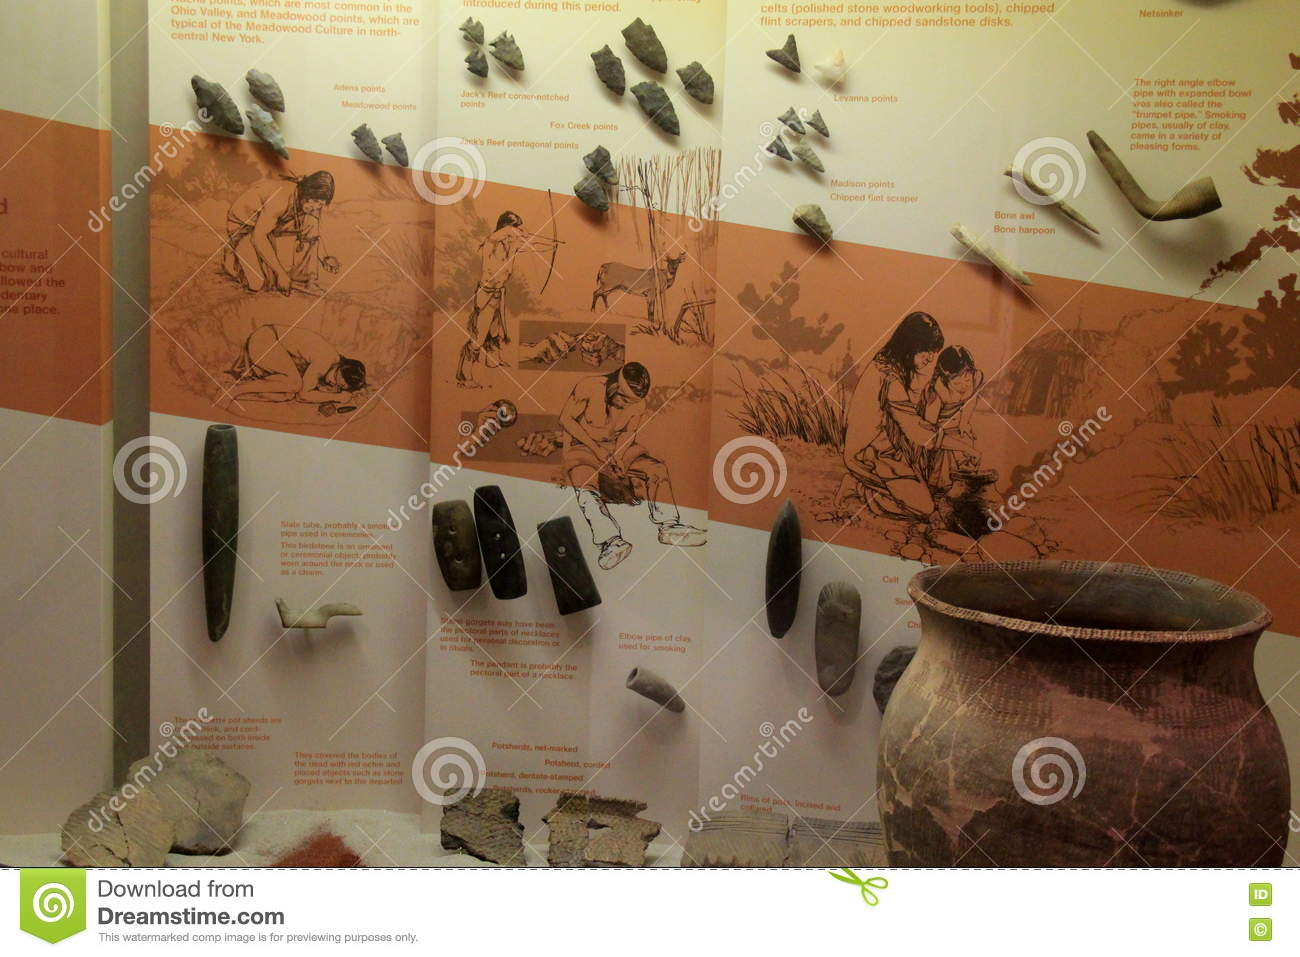 Educational Exhibit Of Various Arrowheads Found In The Region,State